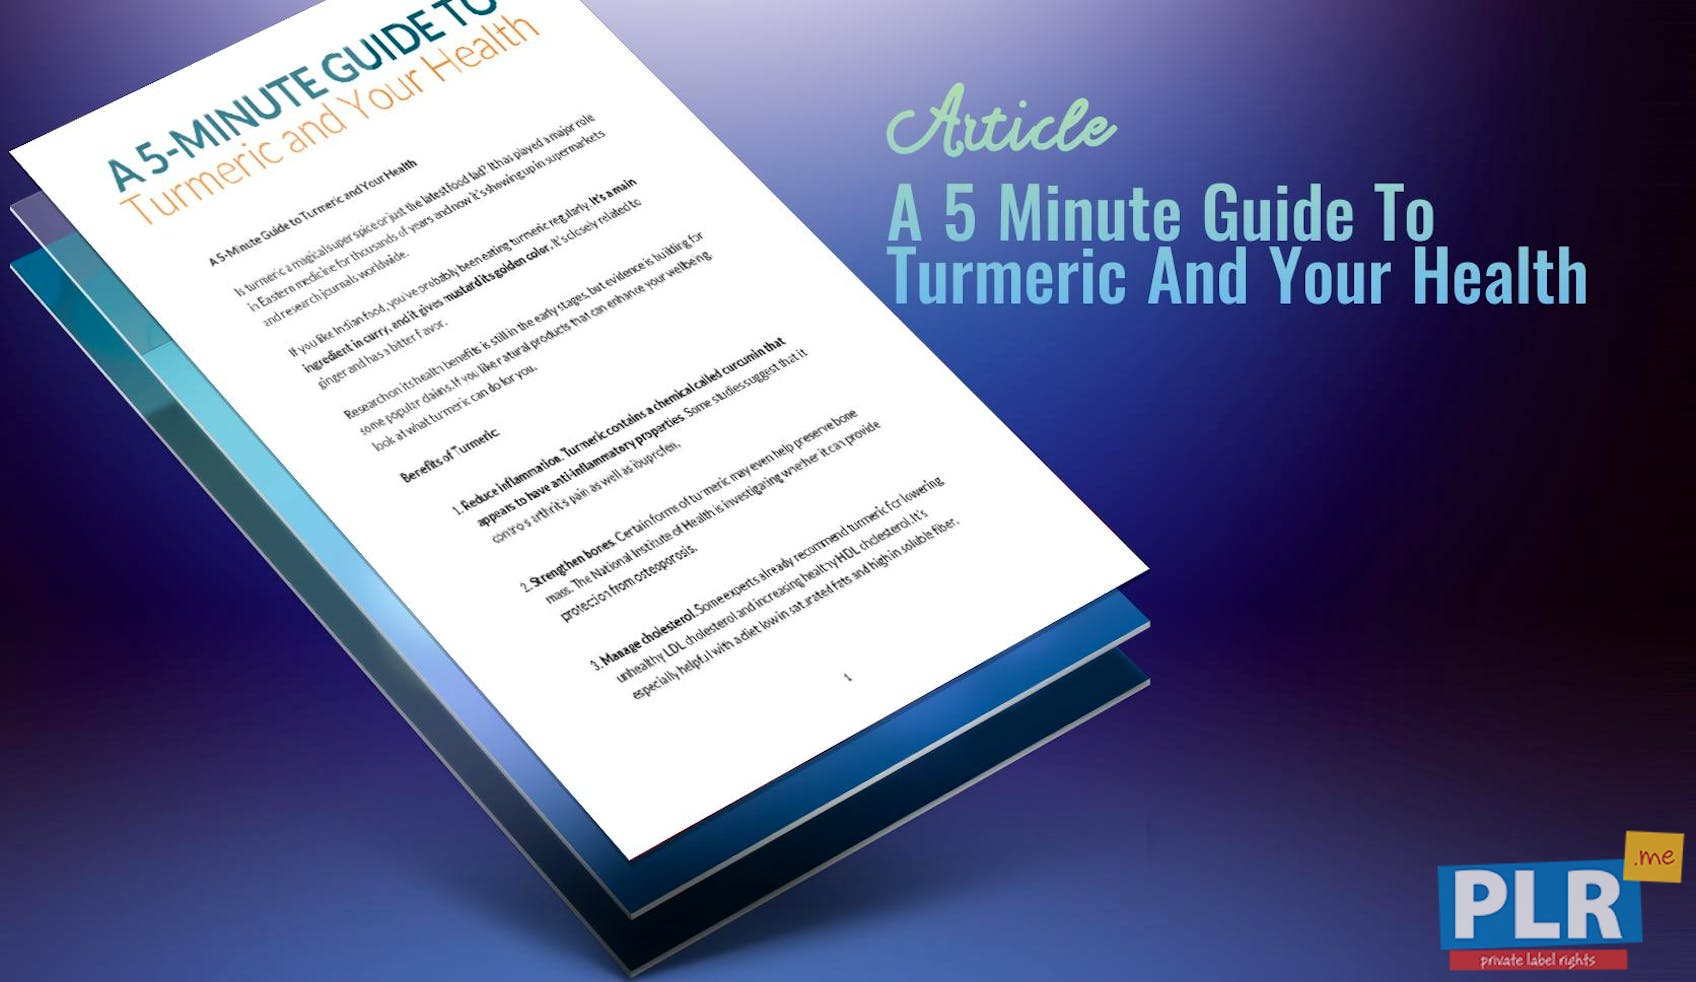 A 5 Minute Guide To Turmeric And Your Health